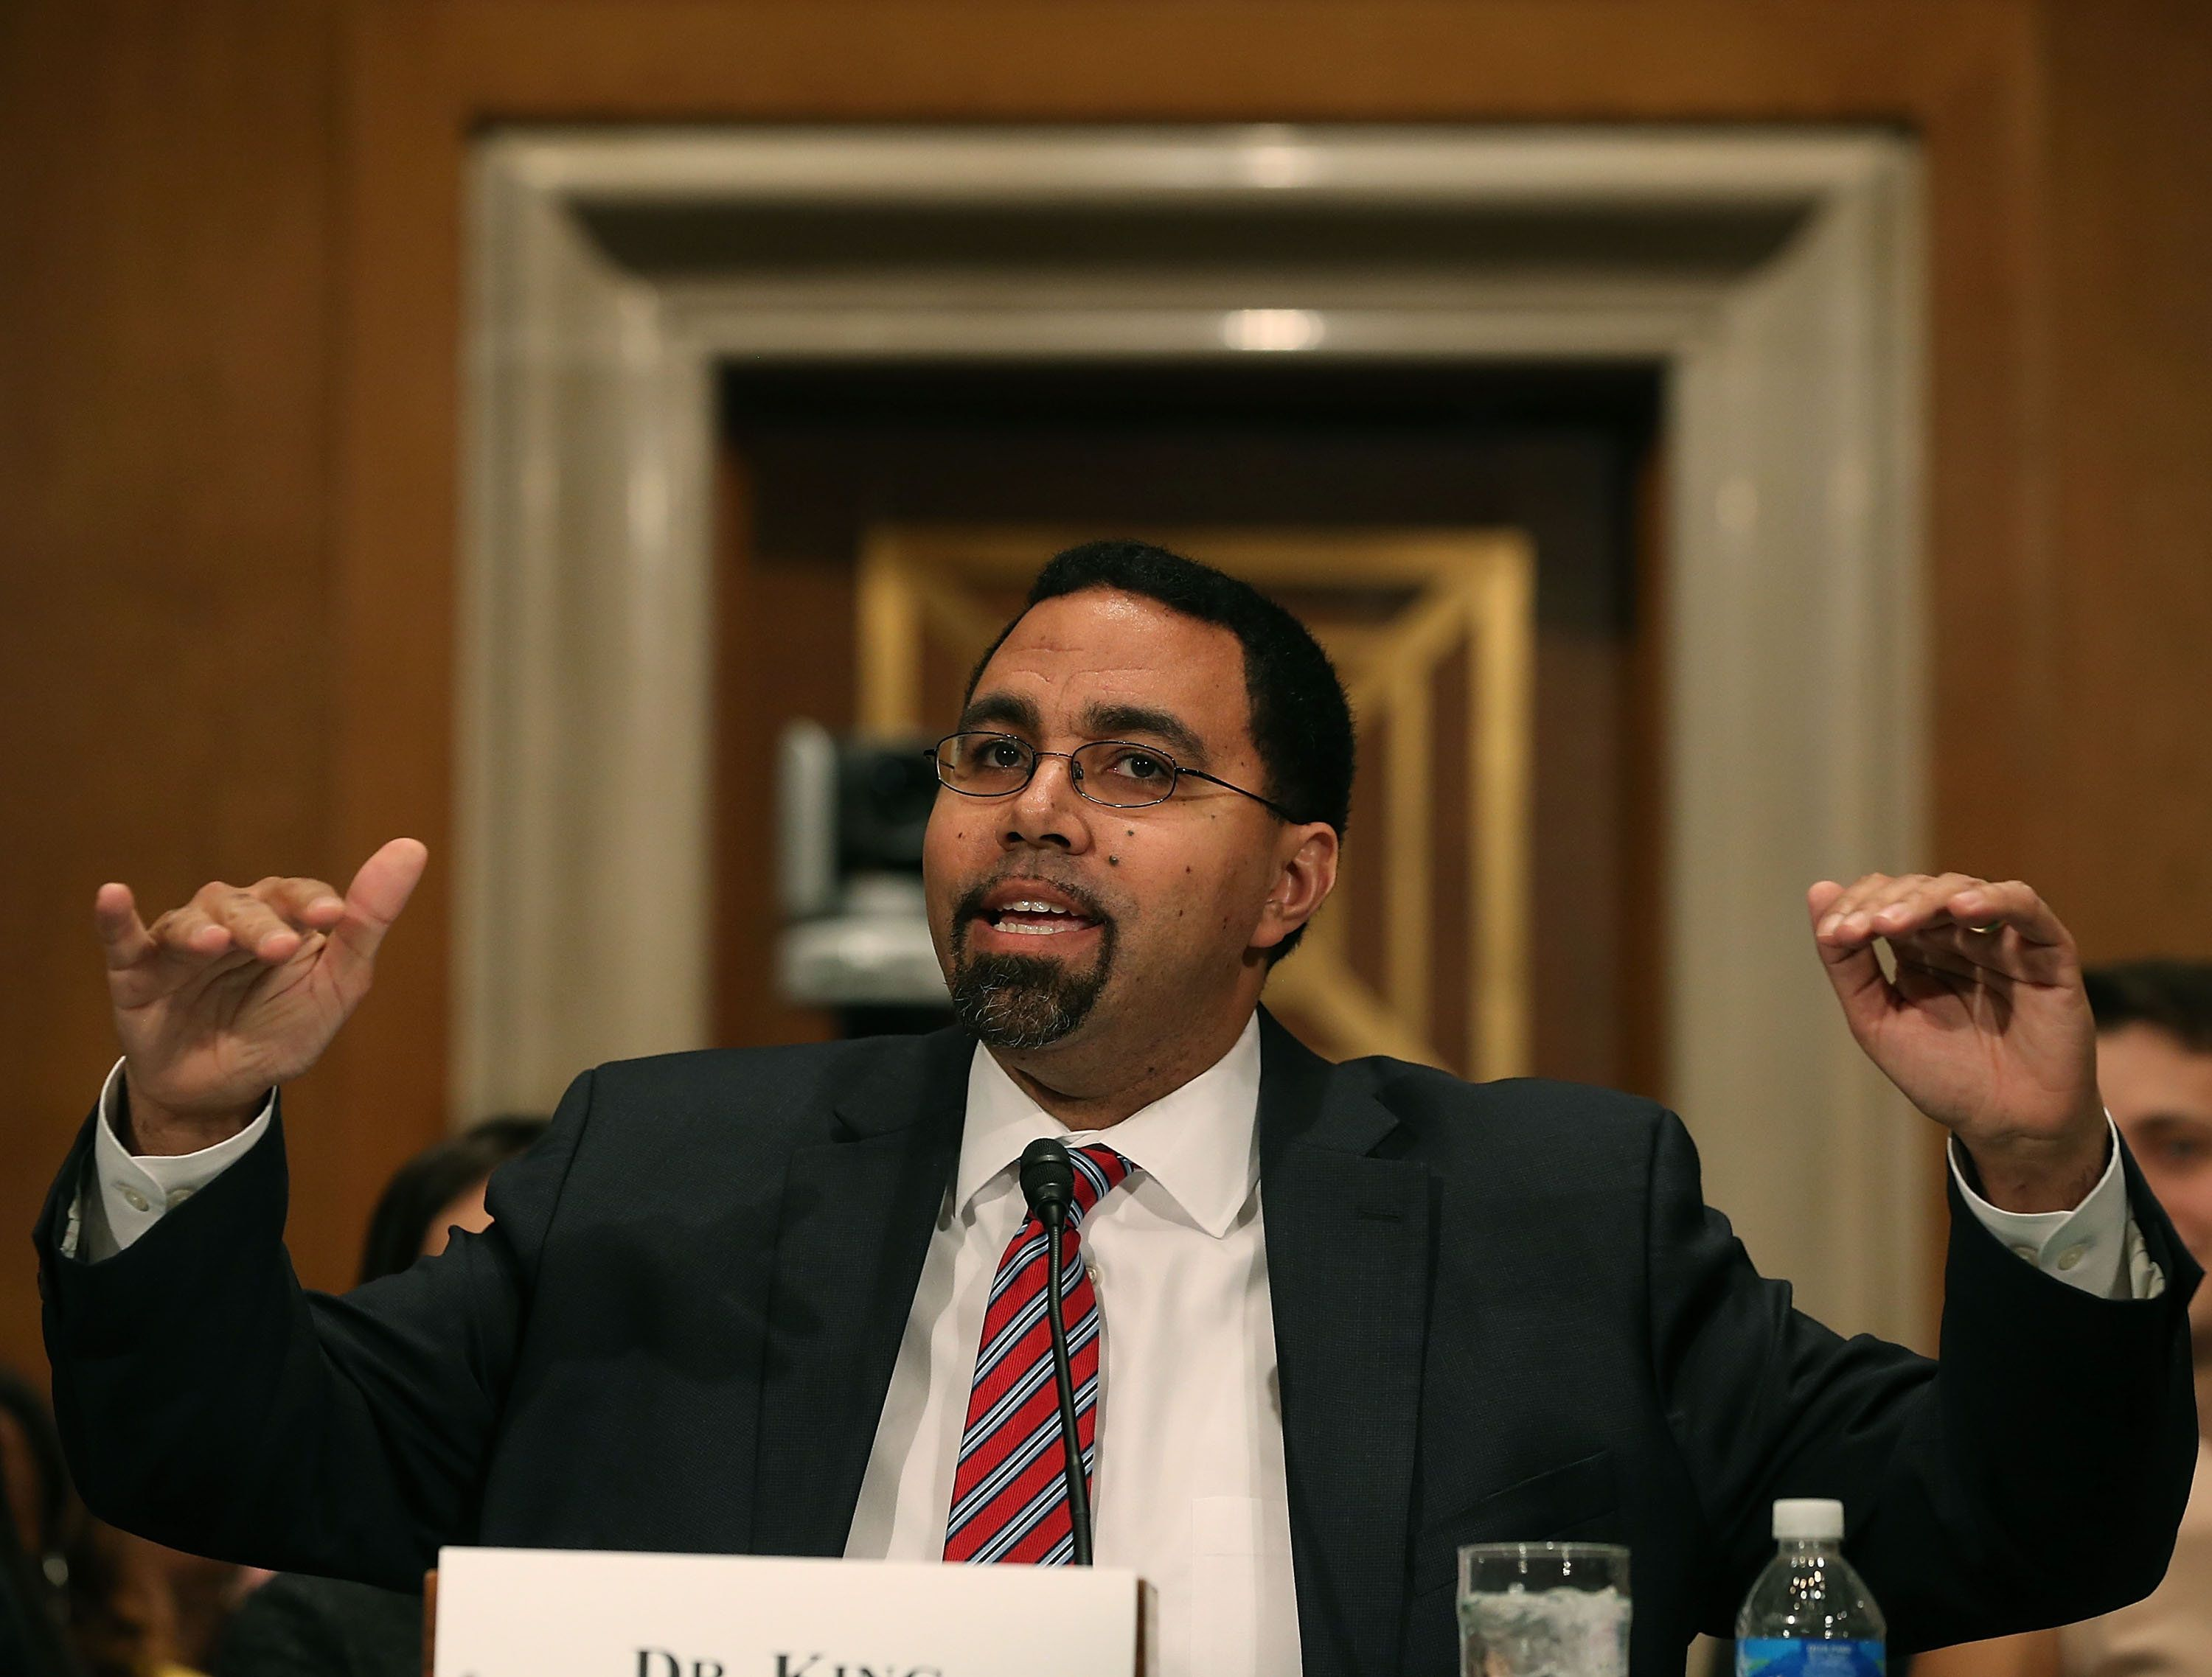 WASHINGTON, DC - FEBRUARY 25:  Dr. John King, speaks during his Senate confirmation hearing to become Education secretary,  on Capitol Hill, February 25, 2016 in Washington, DC. If confirmed by the US Senate, Dr. King will replace outgoing Education Secretary Arne Duncan.  (Photo by Mark Wilson/Getty Images)